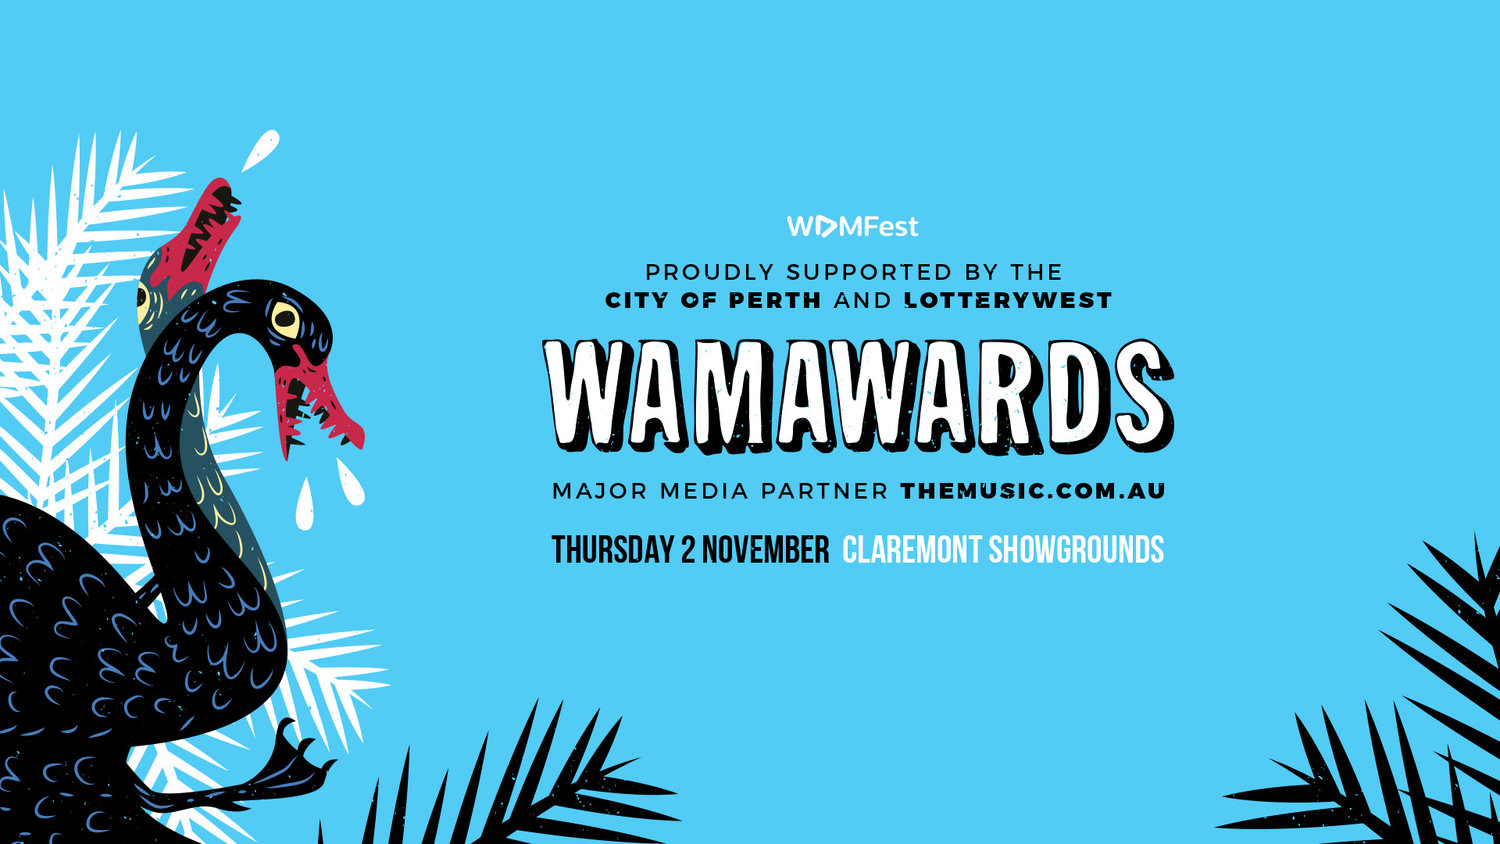 wam-awards-facebook-event3.jpg